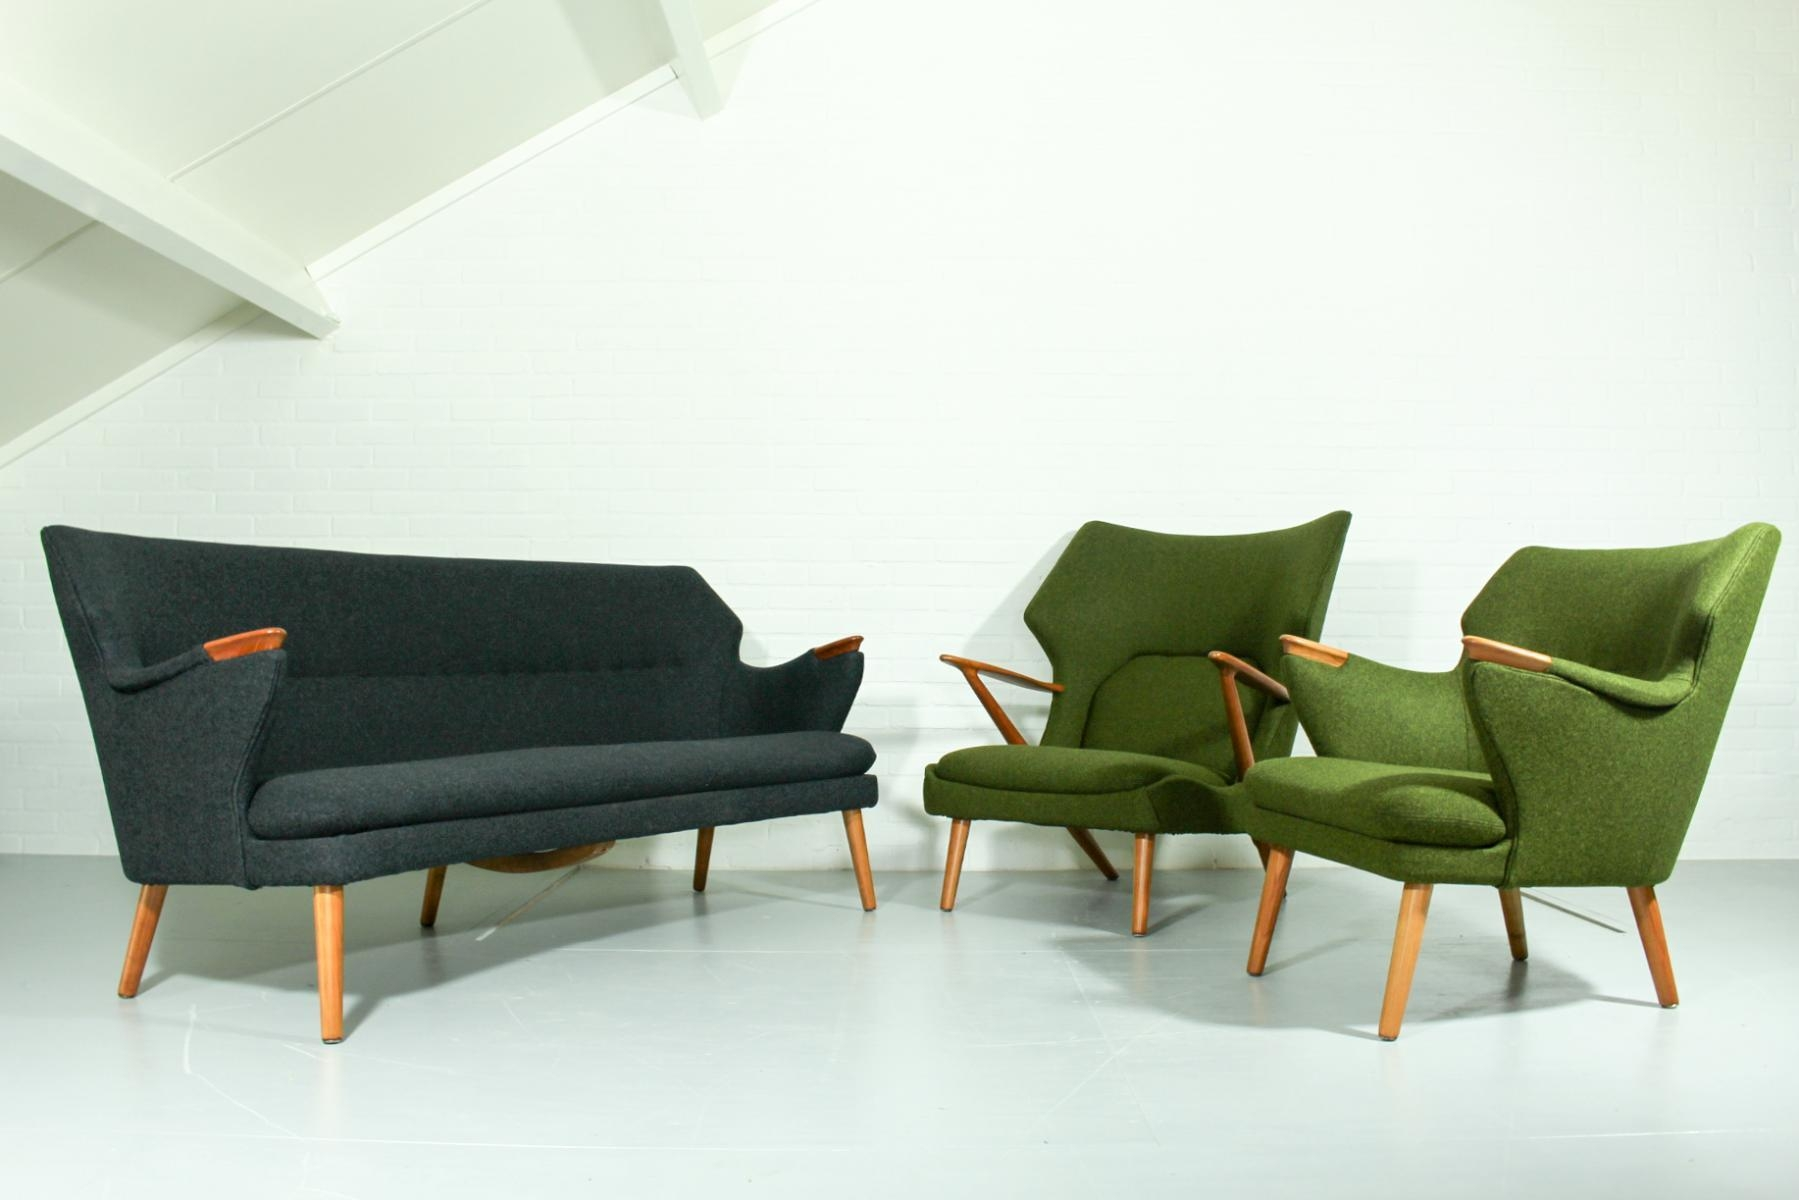 Mid Century Sofa, Chairs, And Table Lounge Set For Sale At Pamono Throughout Sofa Chairs (Image 12 of 20)